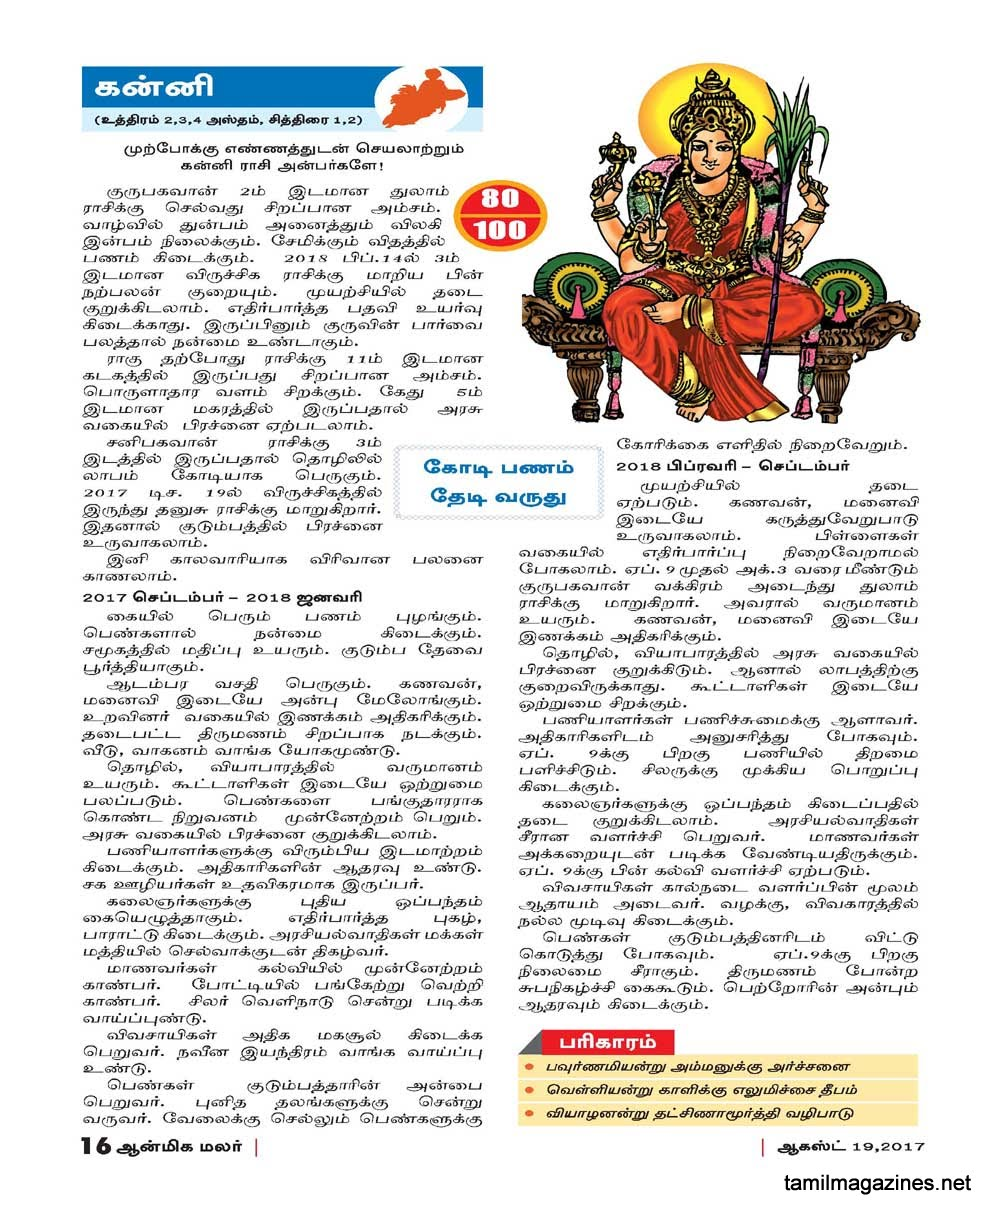 2017-2018 Guru Peyarchi Palan and Pariharam from Dinamalar Aanmegamalar